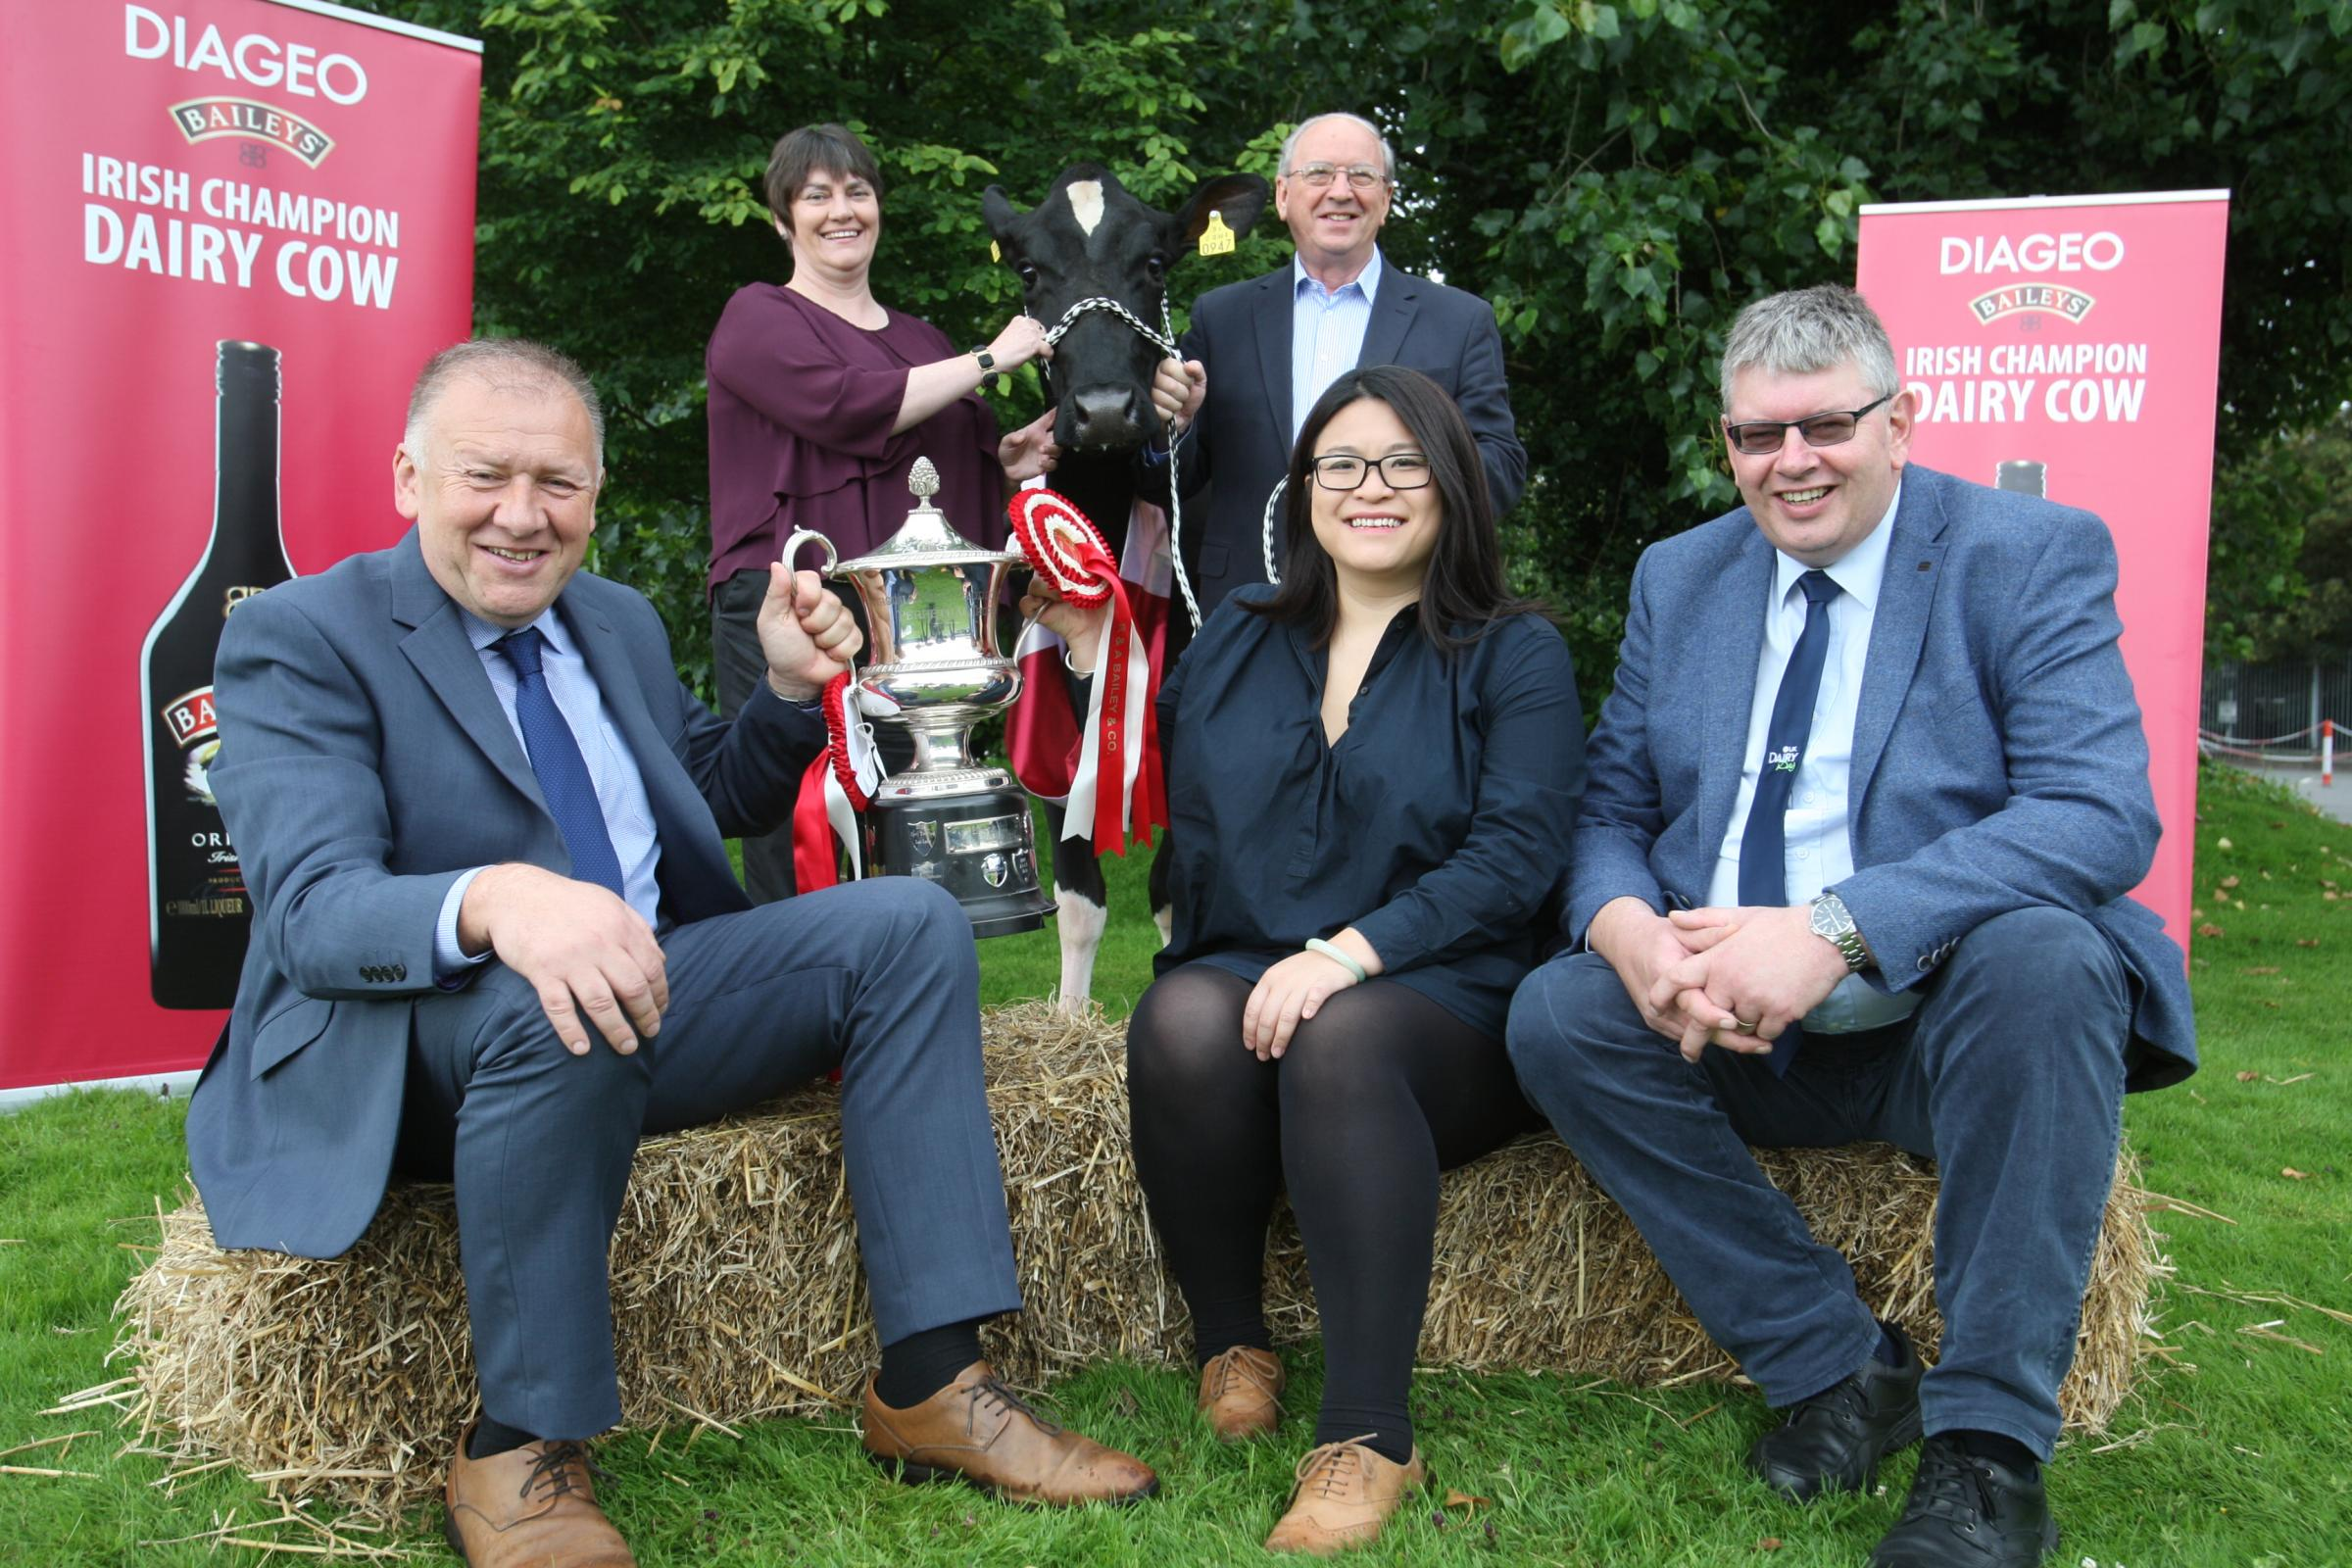 Launching the Diageo Baileys Champion Dairy Cow Competition are(from left); Martin Tynan, Glanbia Ingredients; Mary Gaynor, Virginia Show; Brendan Smyth, Competition Director, Hazel Chu, Diageo Ireland and John Martin, Secretary, Holstein NI.